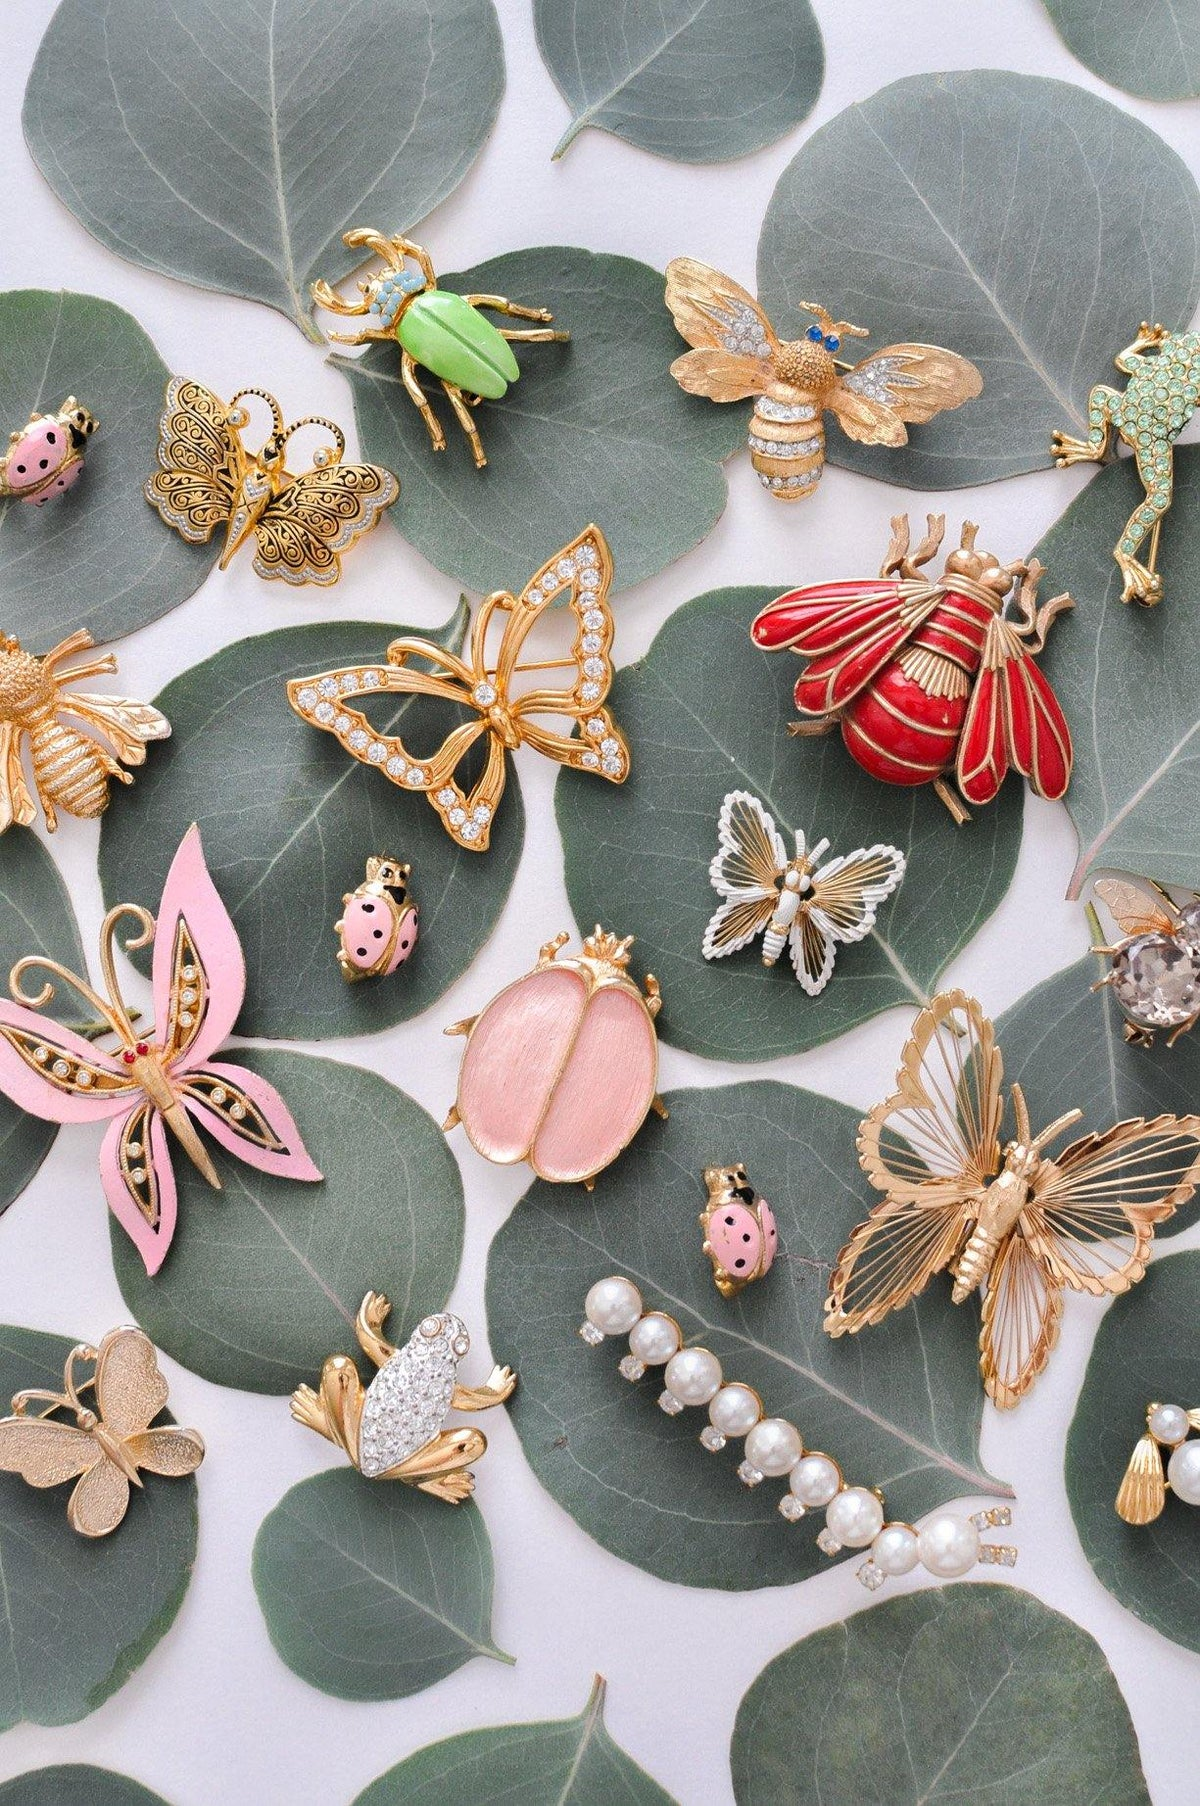 Vintage insect brooches from Sweet & Spark.